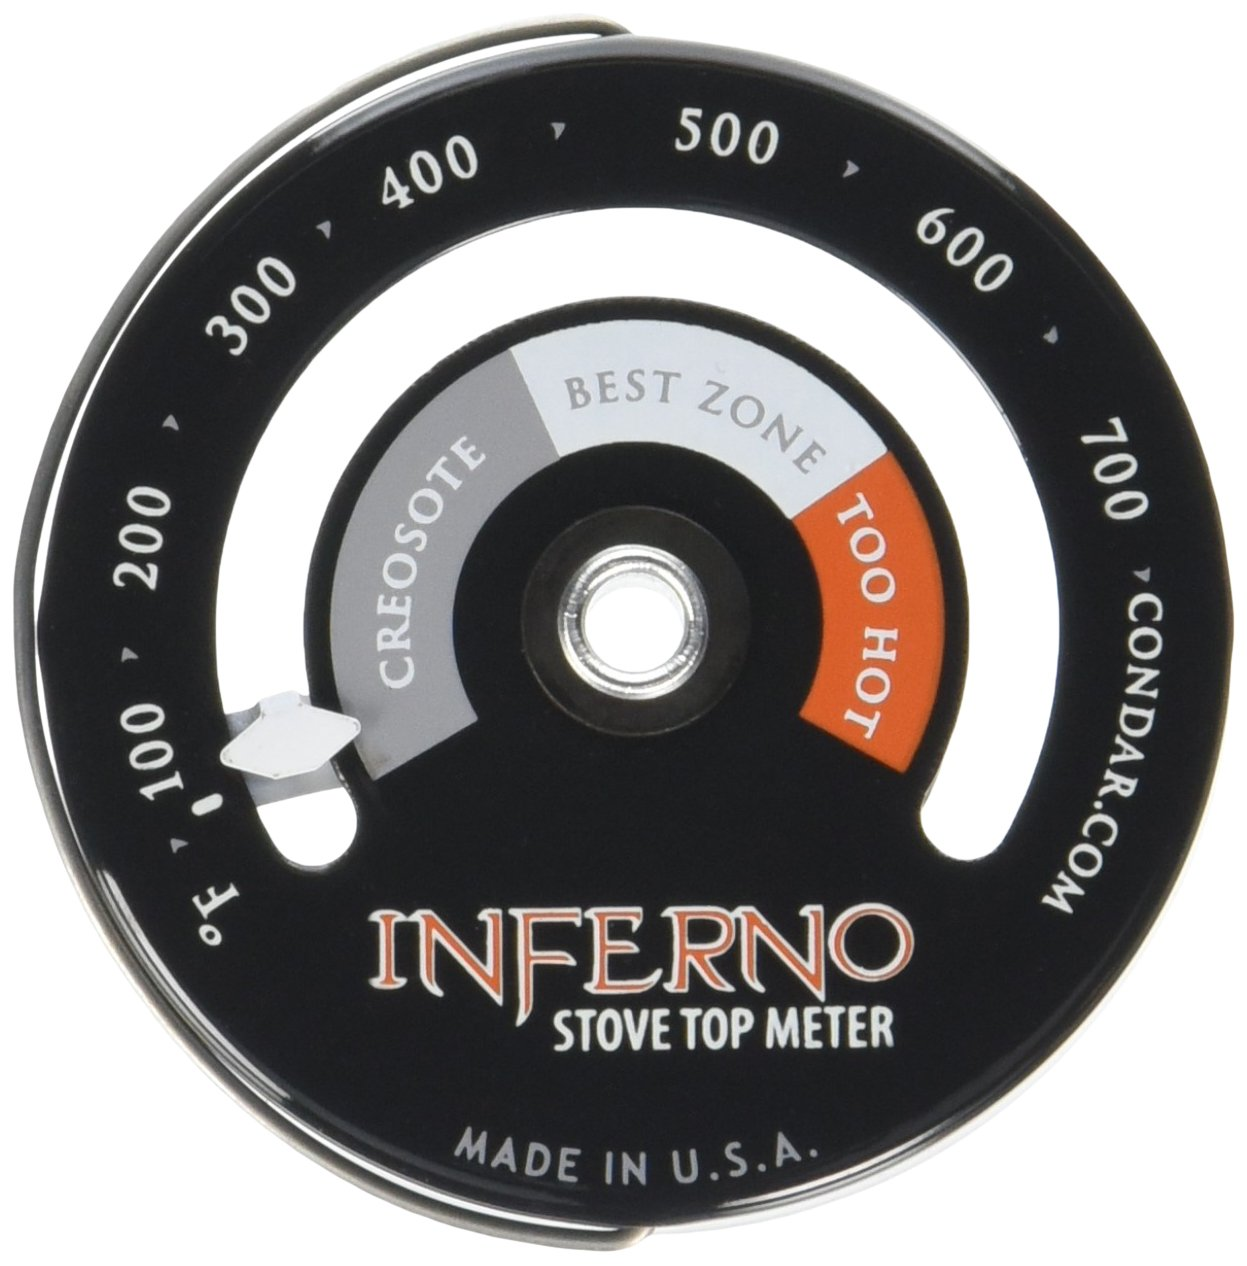 Inferno Stove Top Meter (3-30) thermometer measures temperatures on stove top